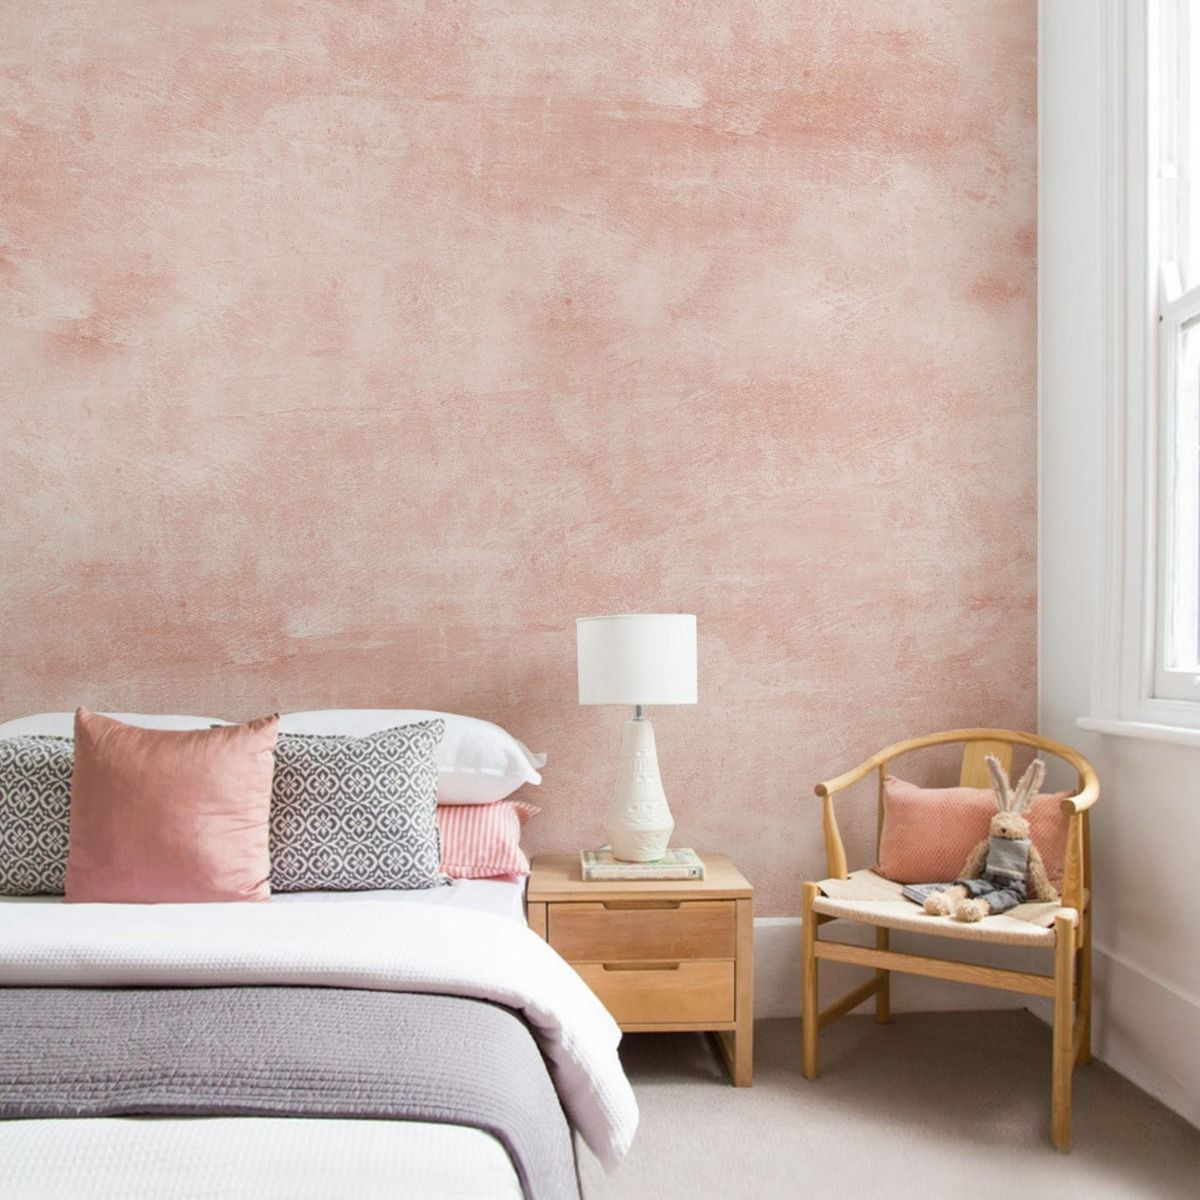 Venetian Plaster Faux Texture Mural Wall Art Peel And Stick Wallpaper Pink 431078995585744533 Accent Wall Bedroom Home Decor Bedroom Wall